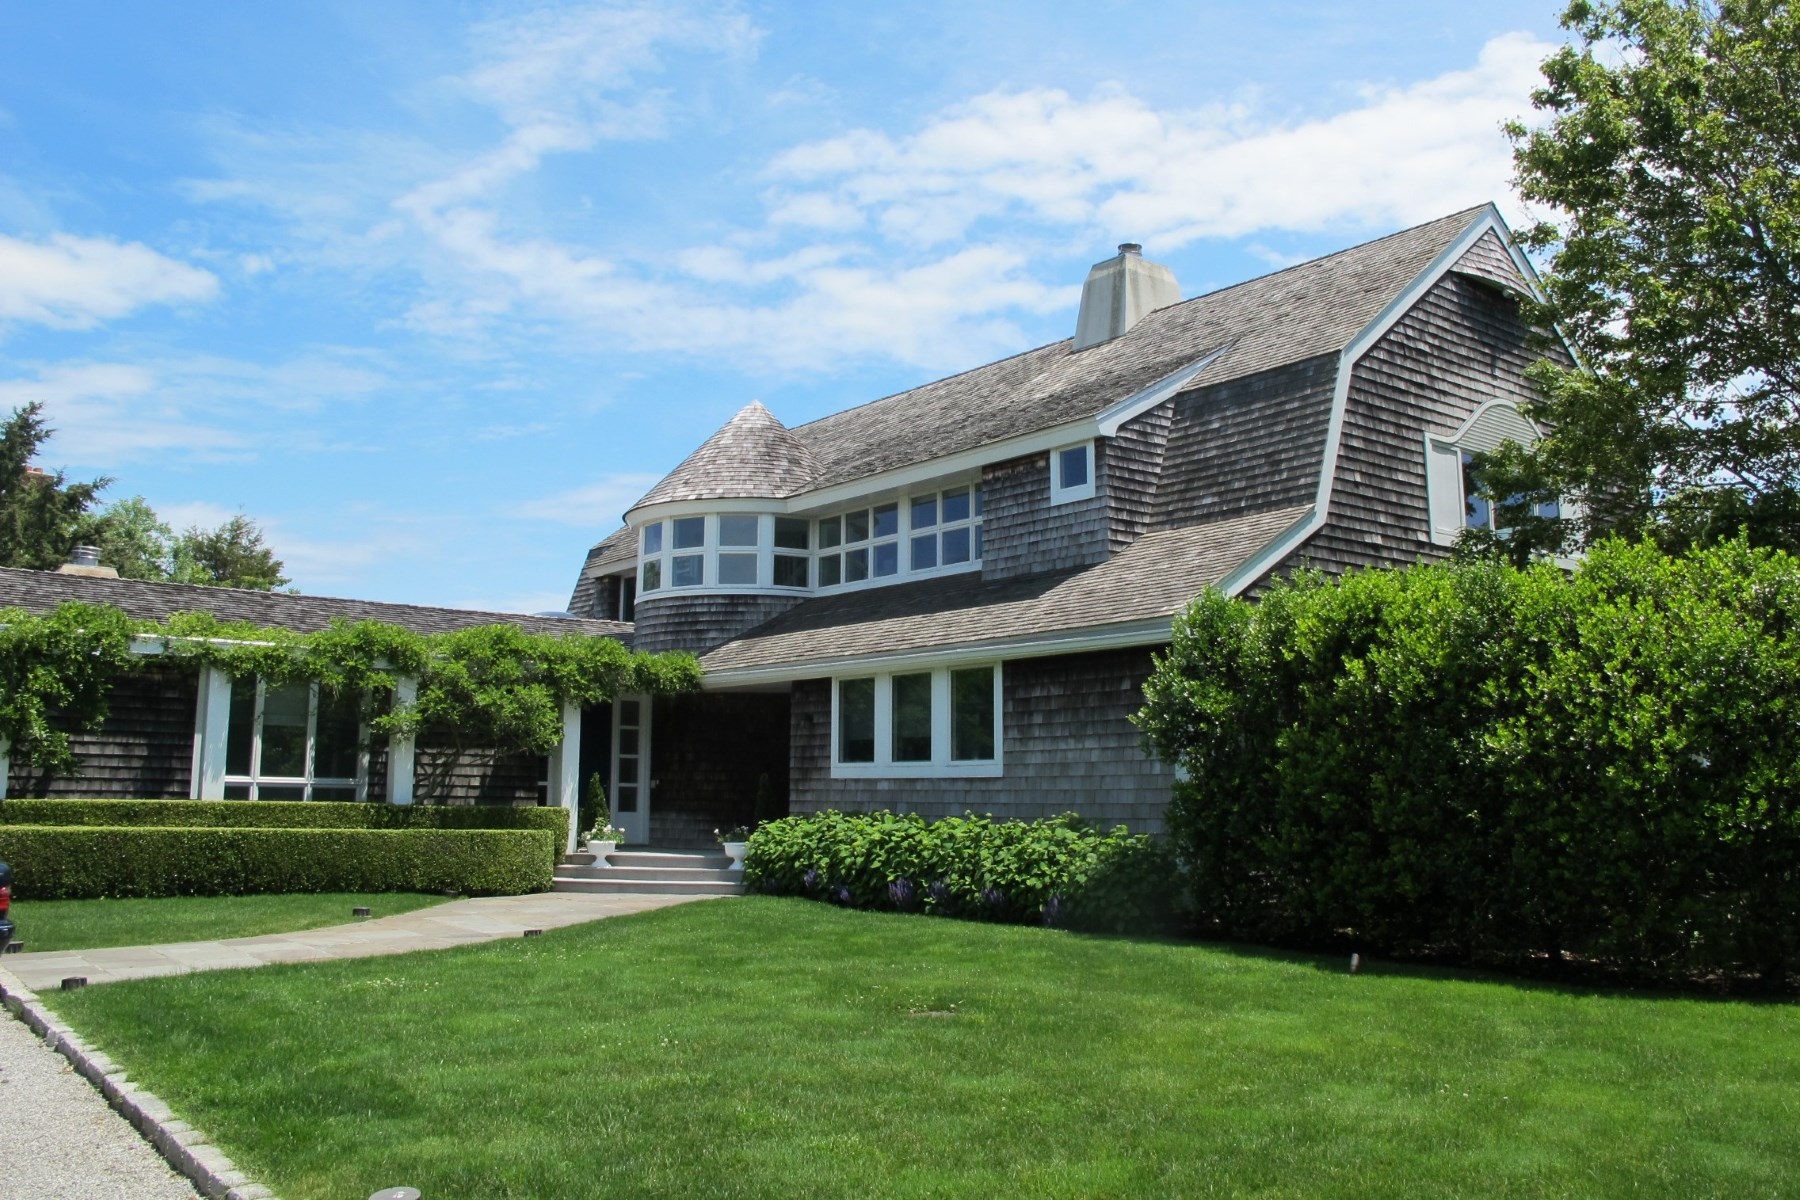 Single Family Home for Sale at Near Mecox Bay - Water Mill 39 Bay Lane Water Mill, New York 11976 United States